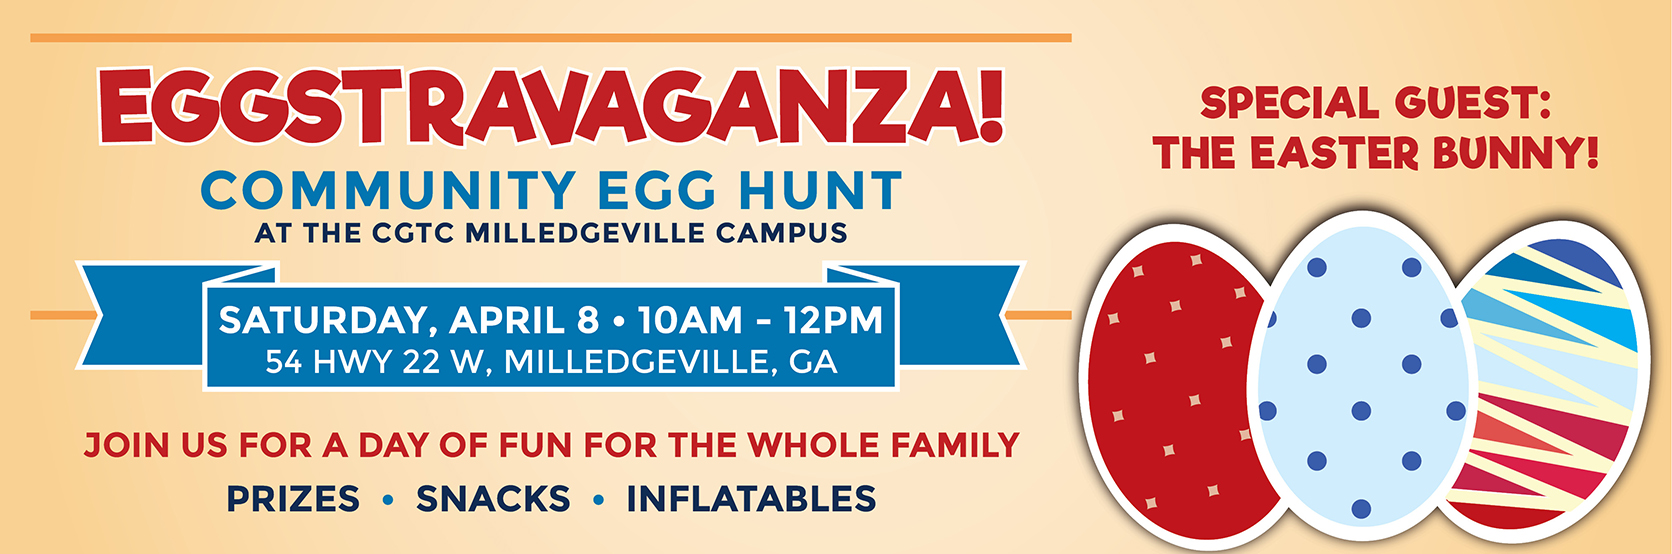 A community egg hunt will be held on the Milledgeville campus of CGTC on Saturday, April 8 from 10:00 am to 12 pm.